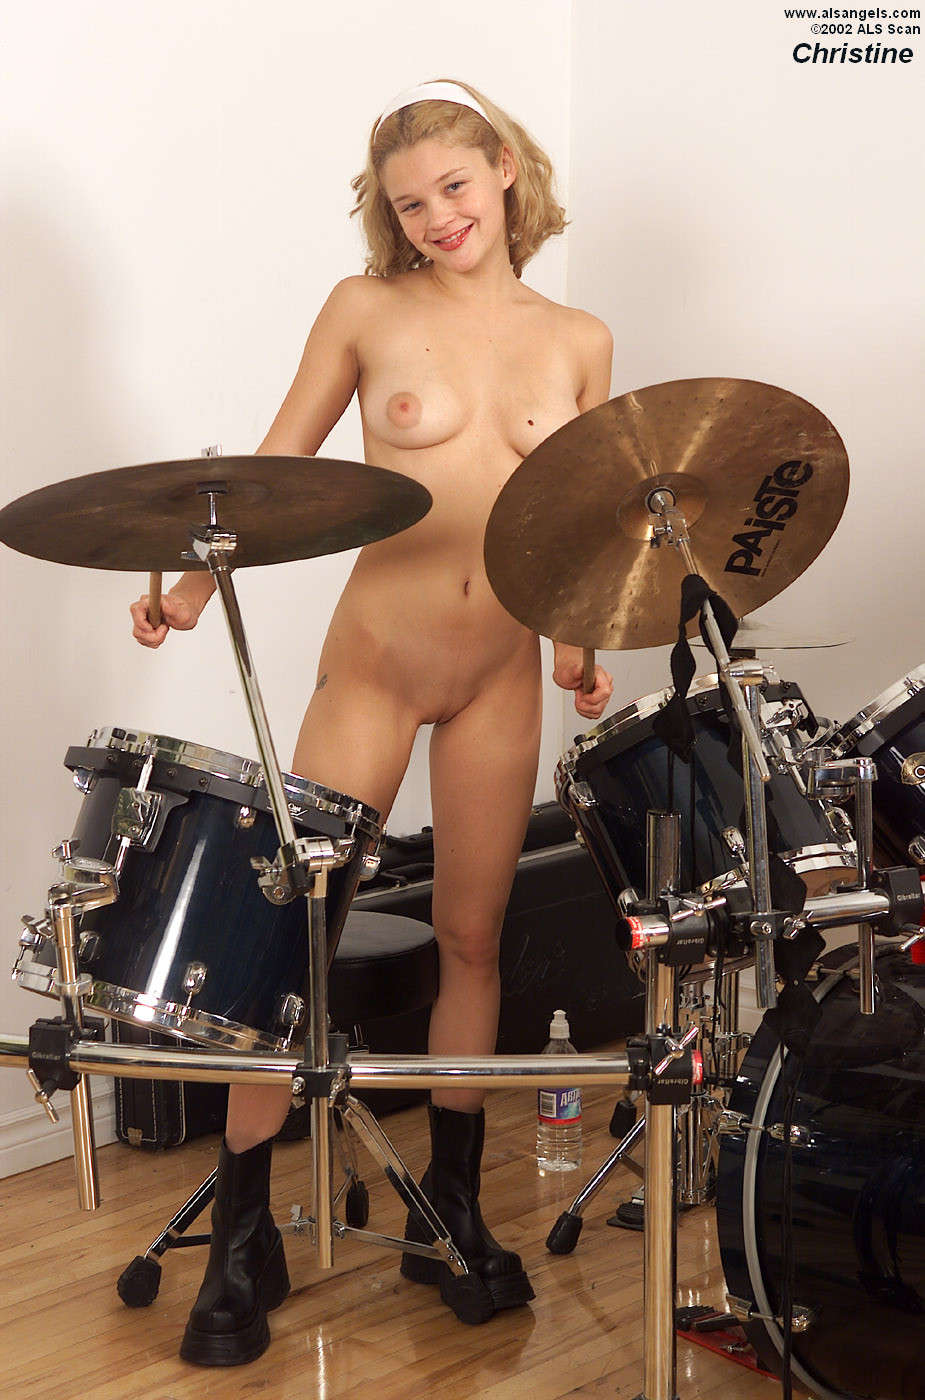 playing-drums-girl-nude-perfect-sex-strepper